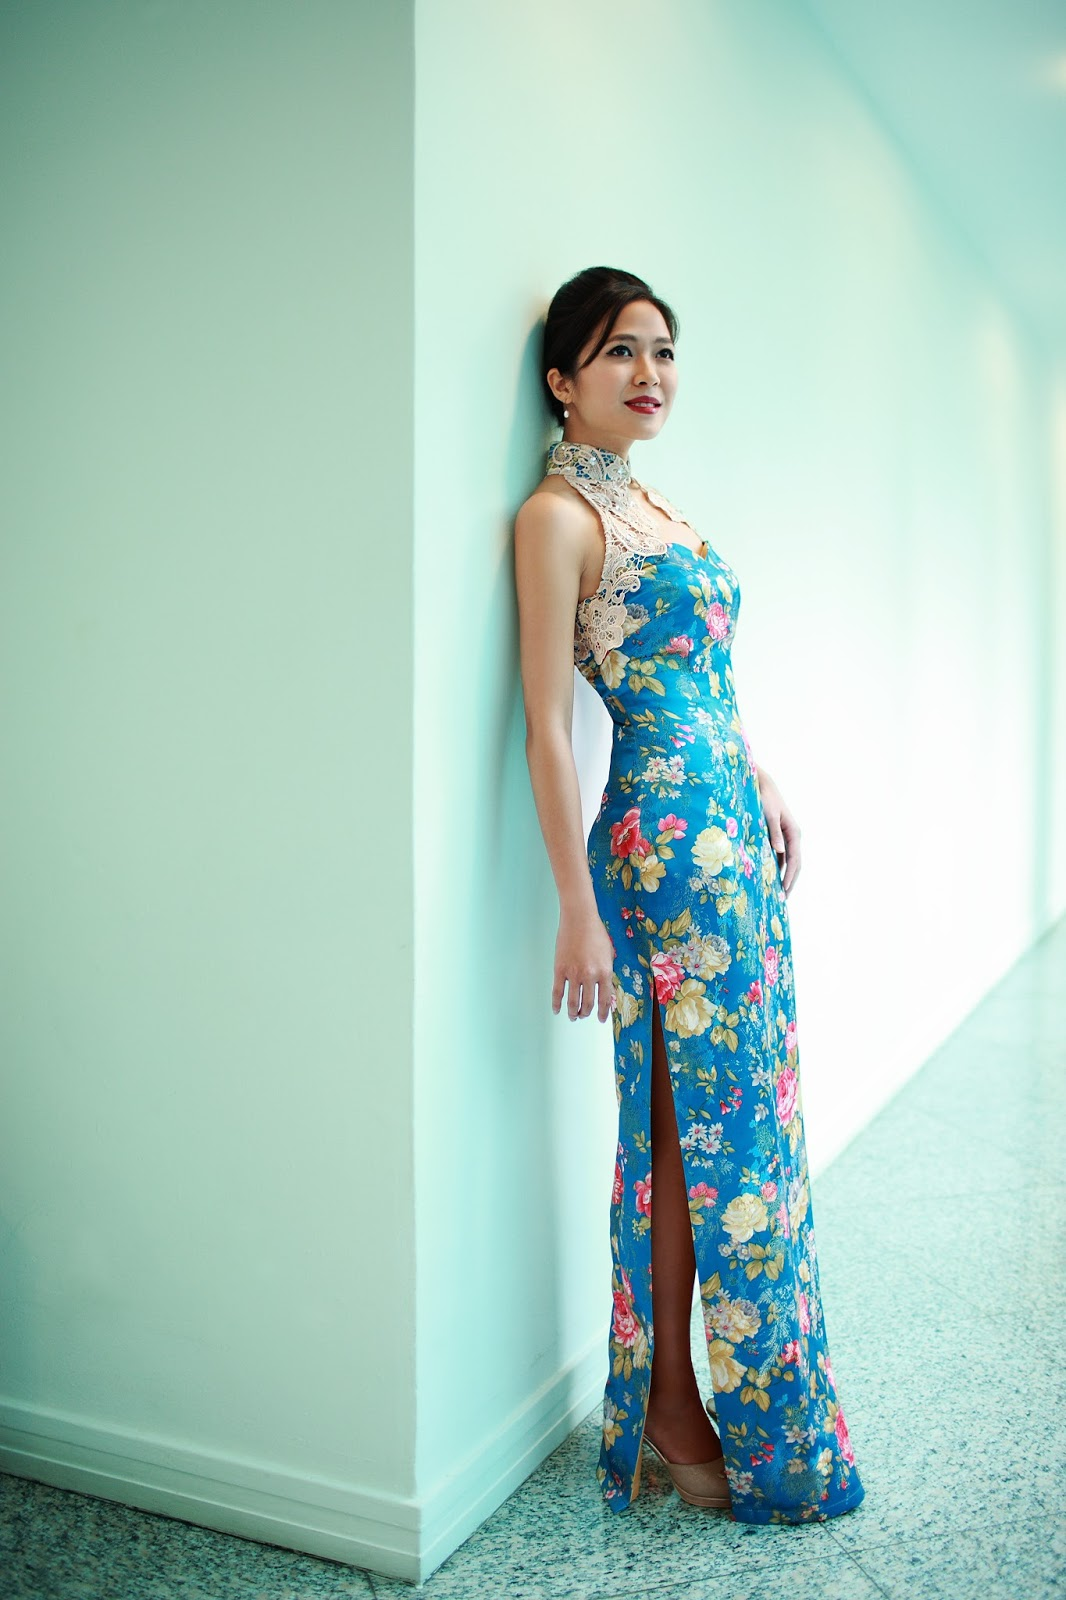 Mazzario Cheongsam Shop Singapore